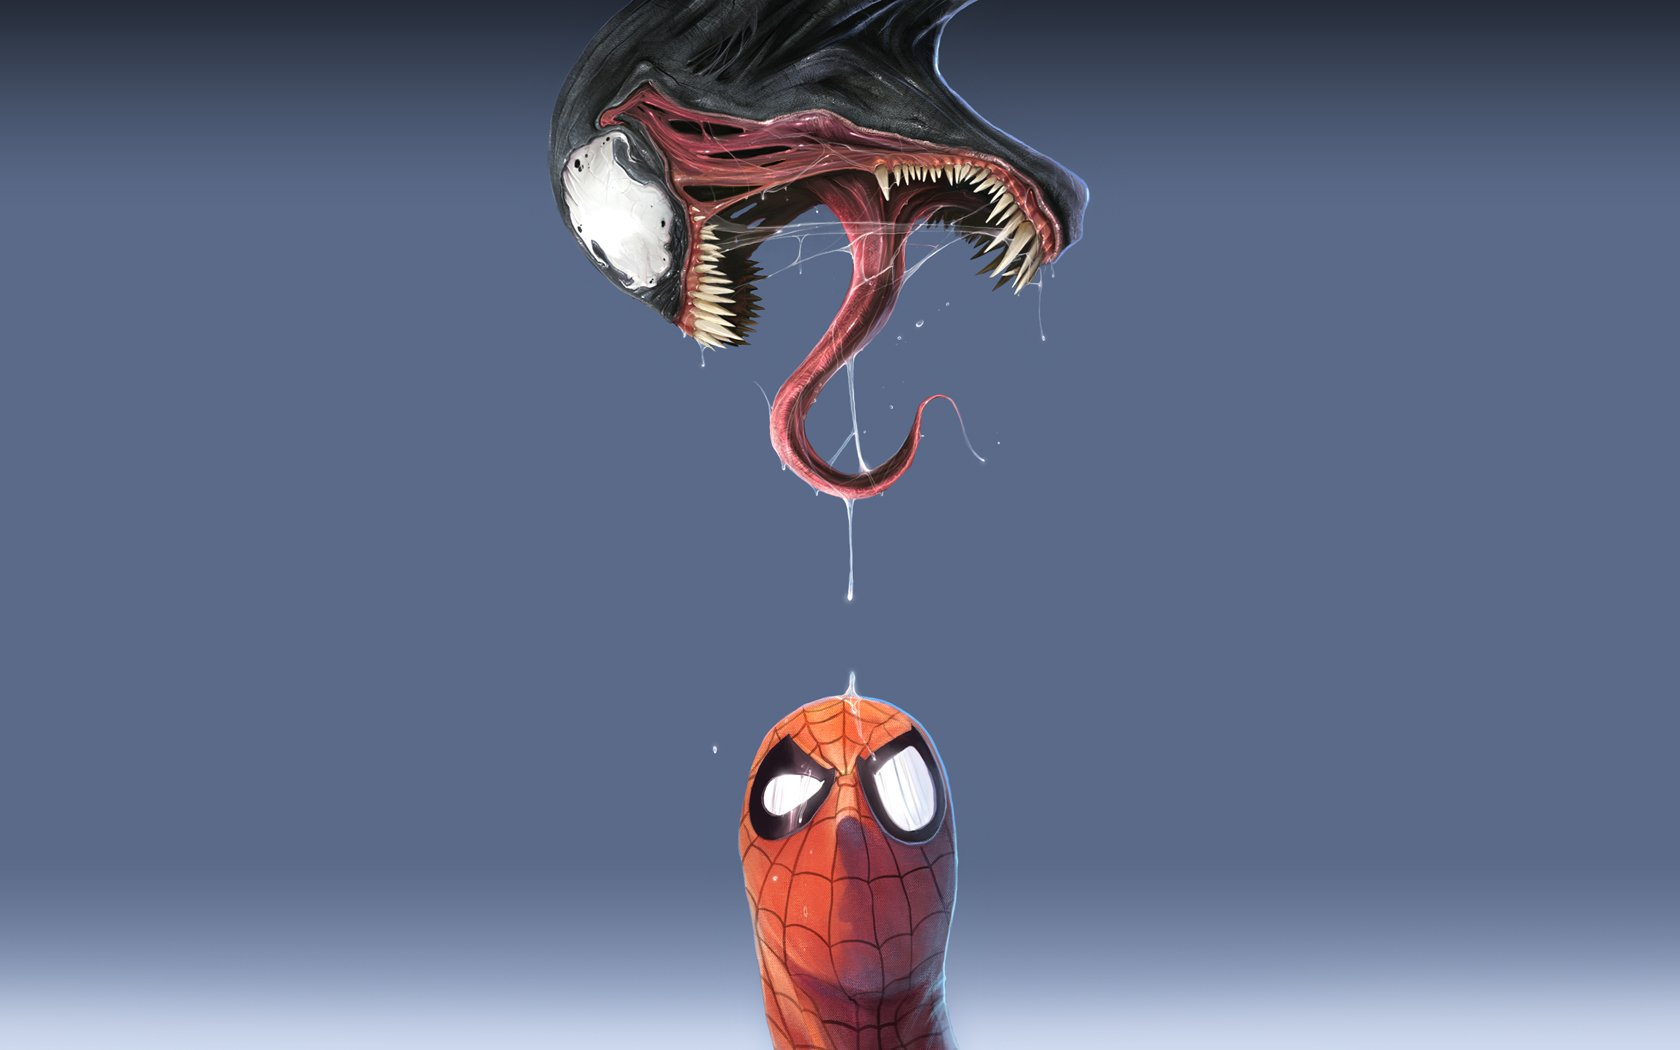 Comics - Spider-Man  Venom Wallpaper